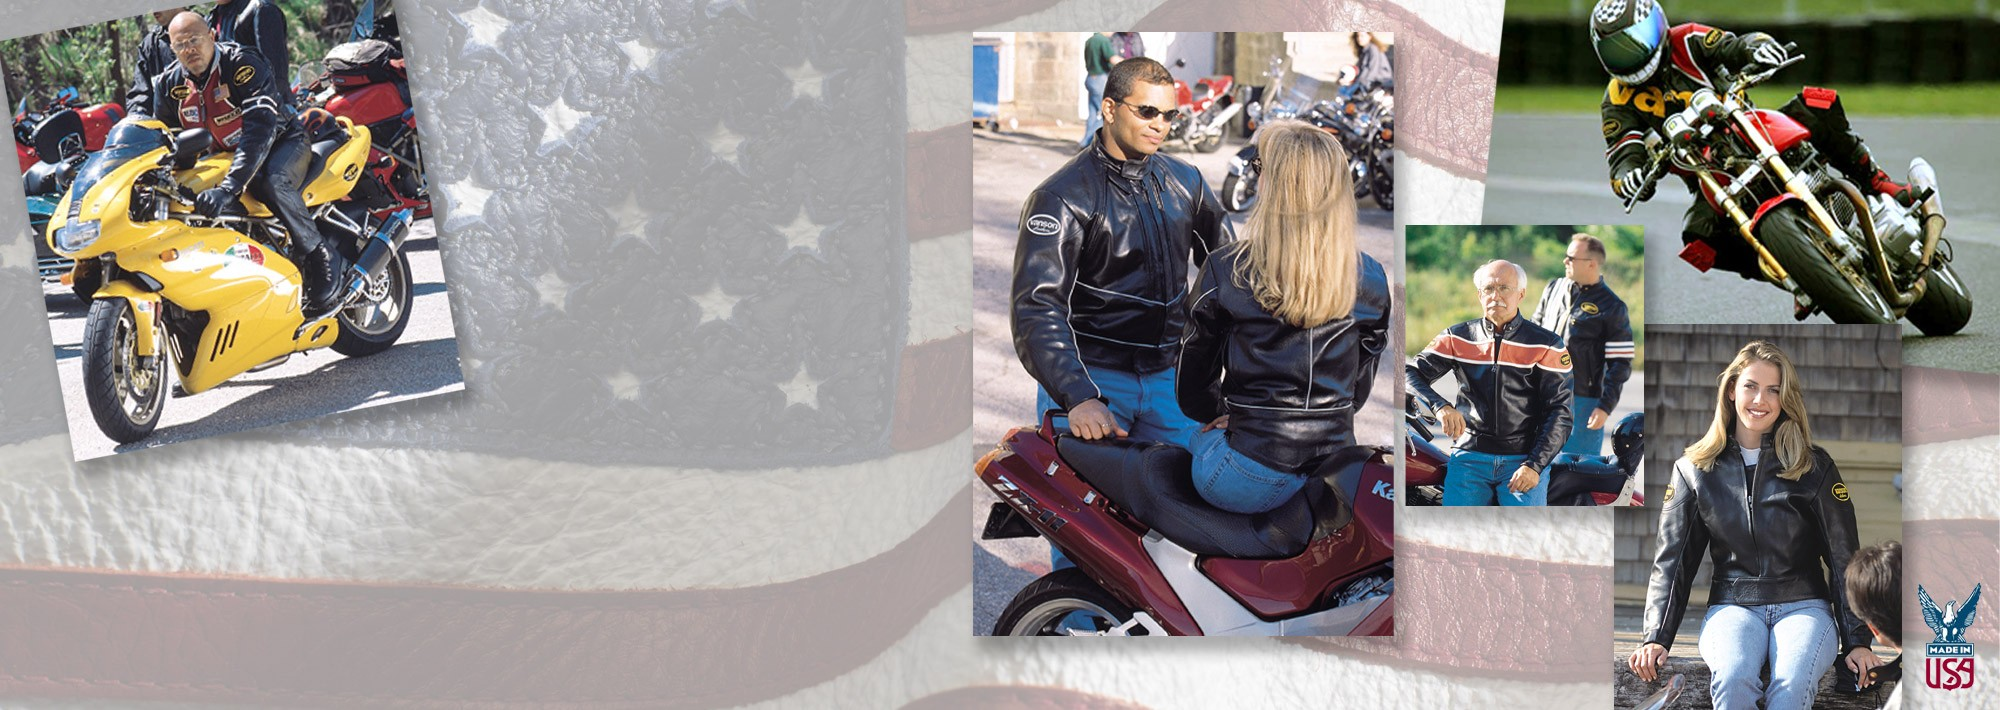 MOTORCYCLE JACKETS WITH RACING DNA